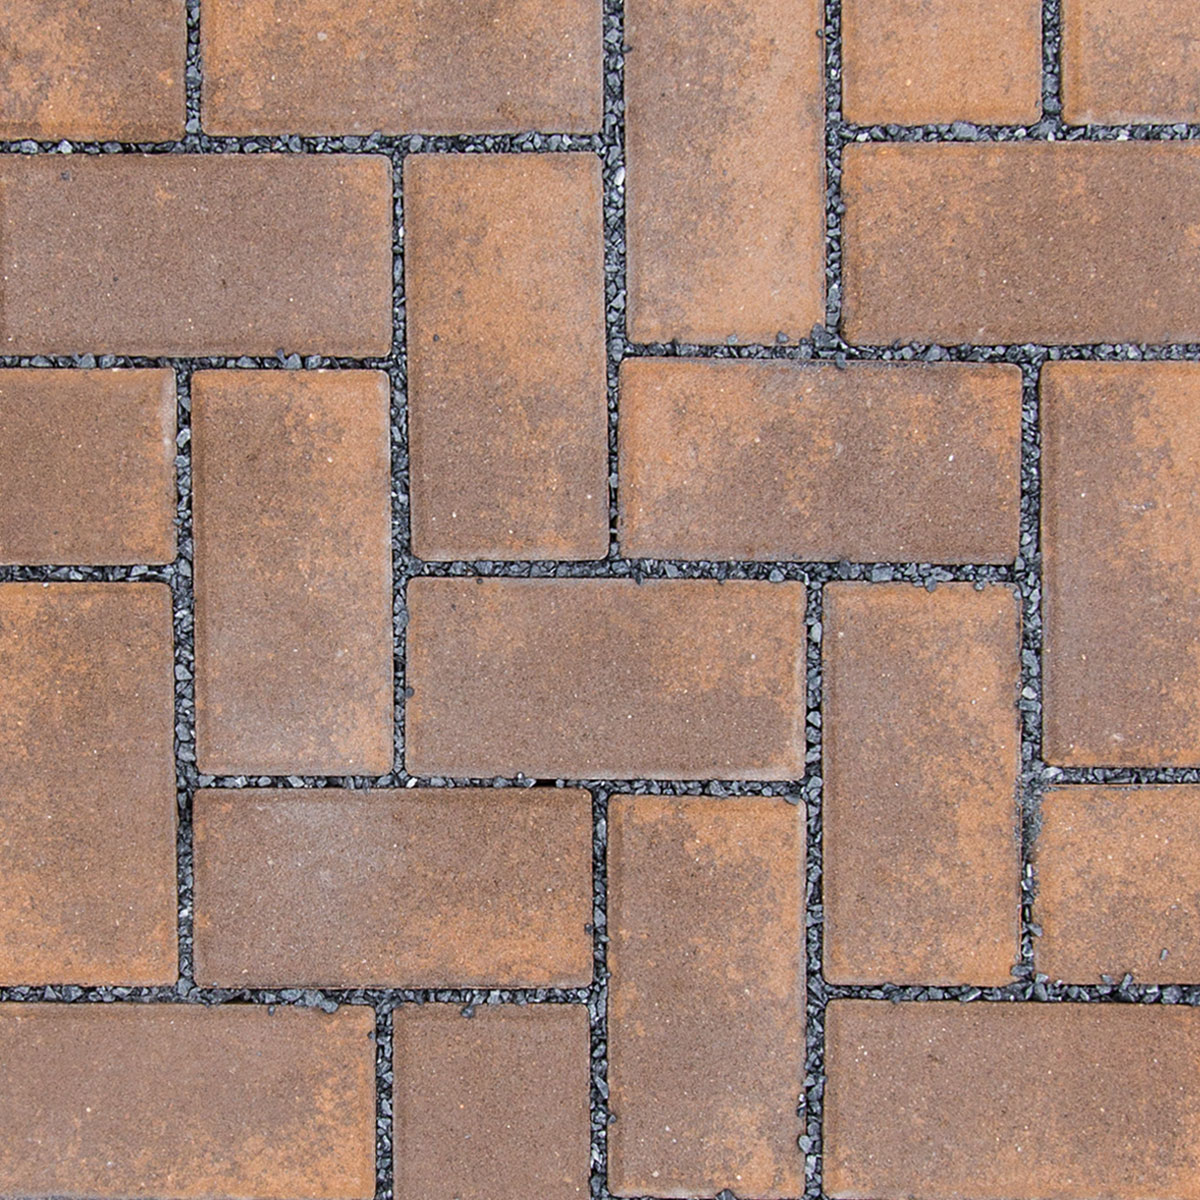 Ep Henry Permeable Pavers Norristown Brick